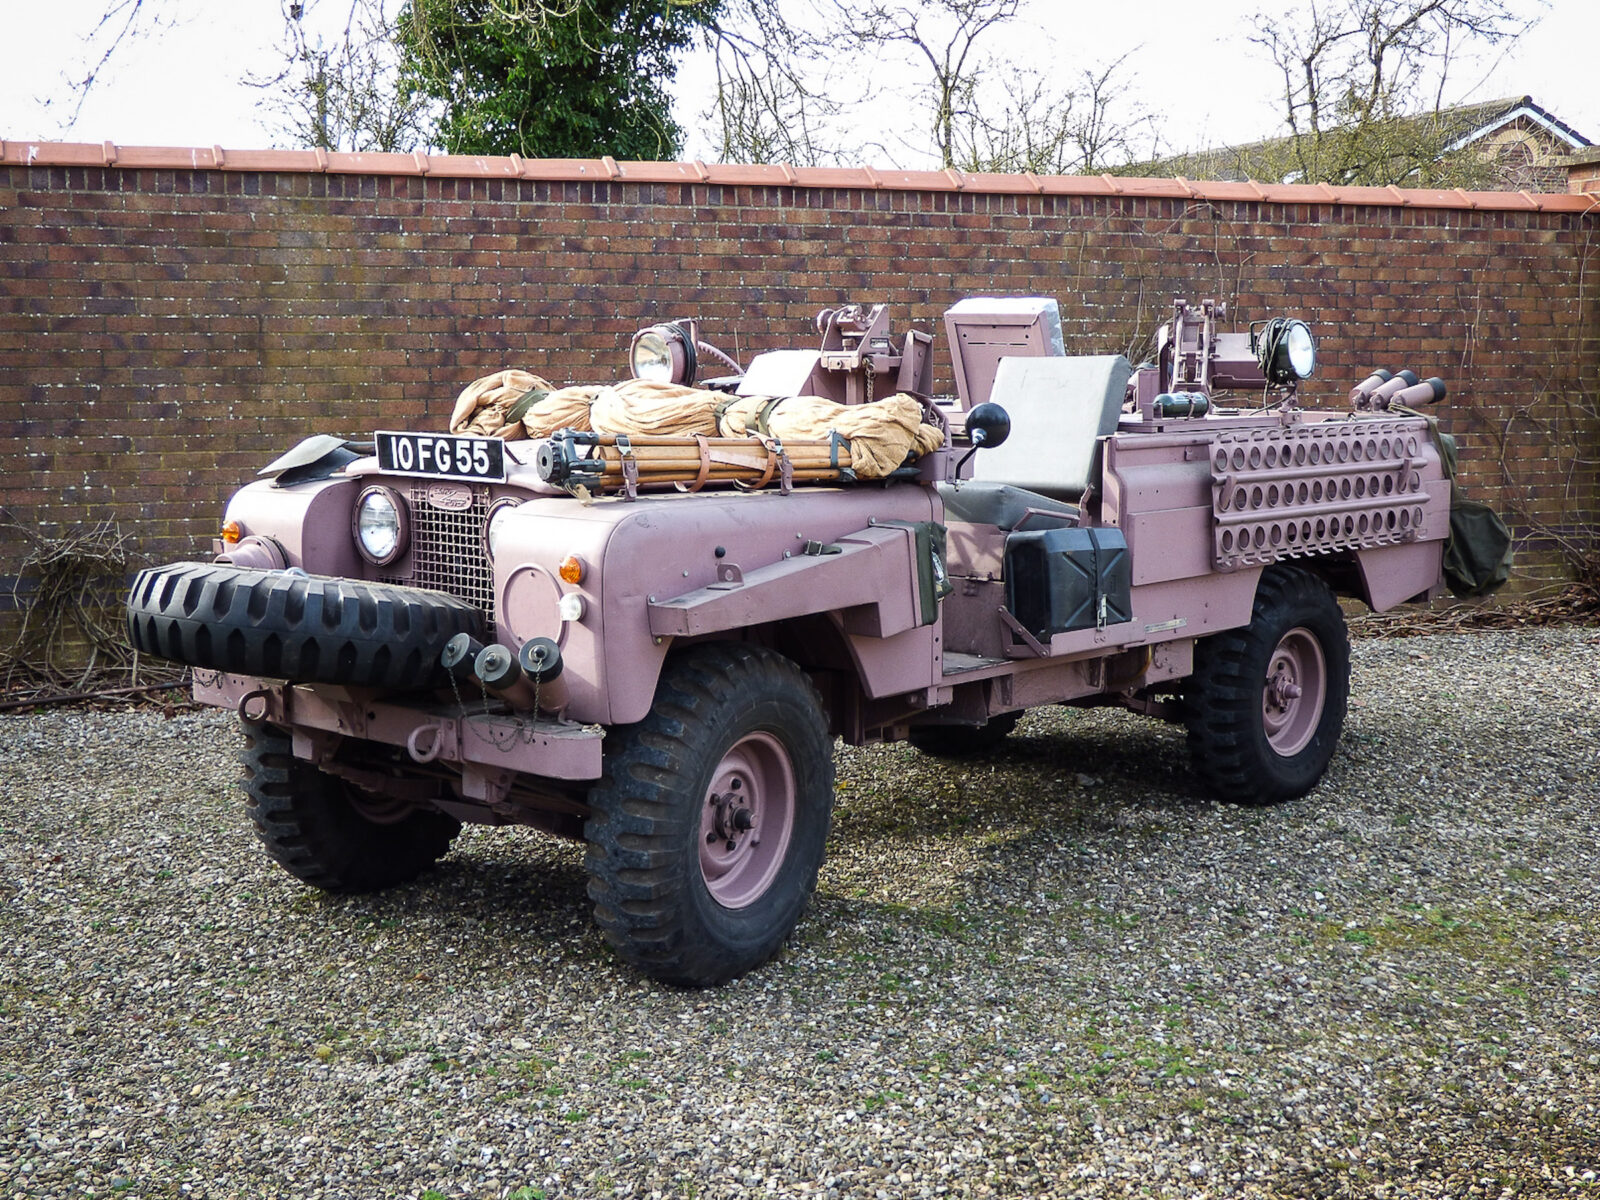 Series 2A SAS Land Rover Pink Panther